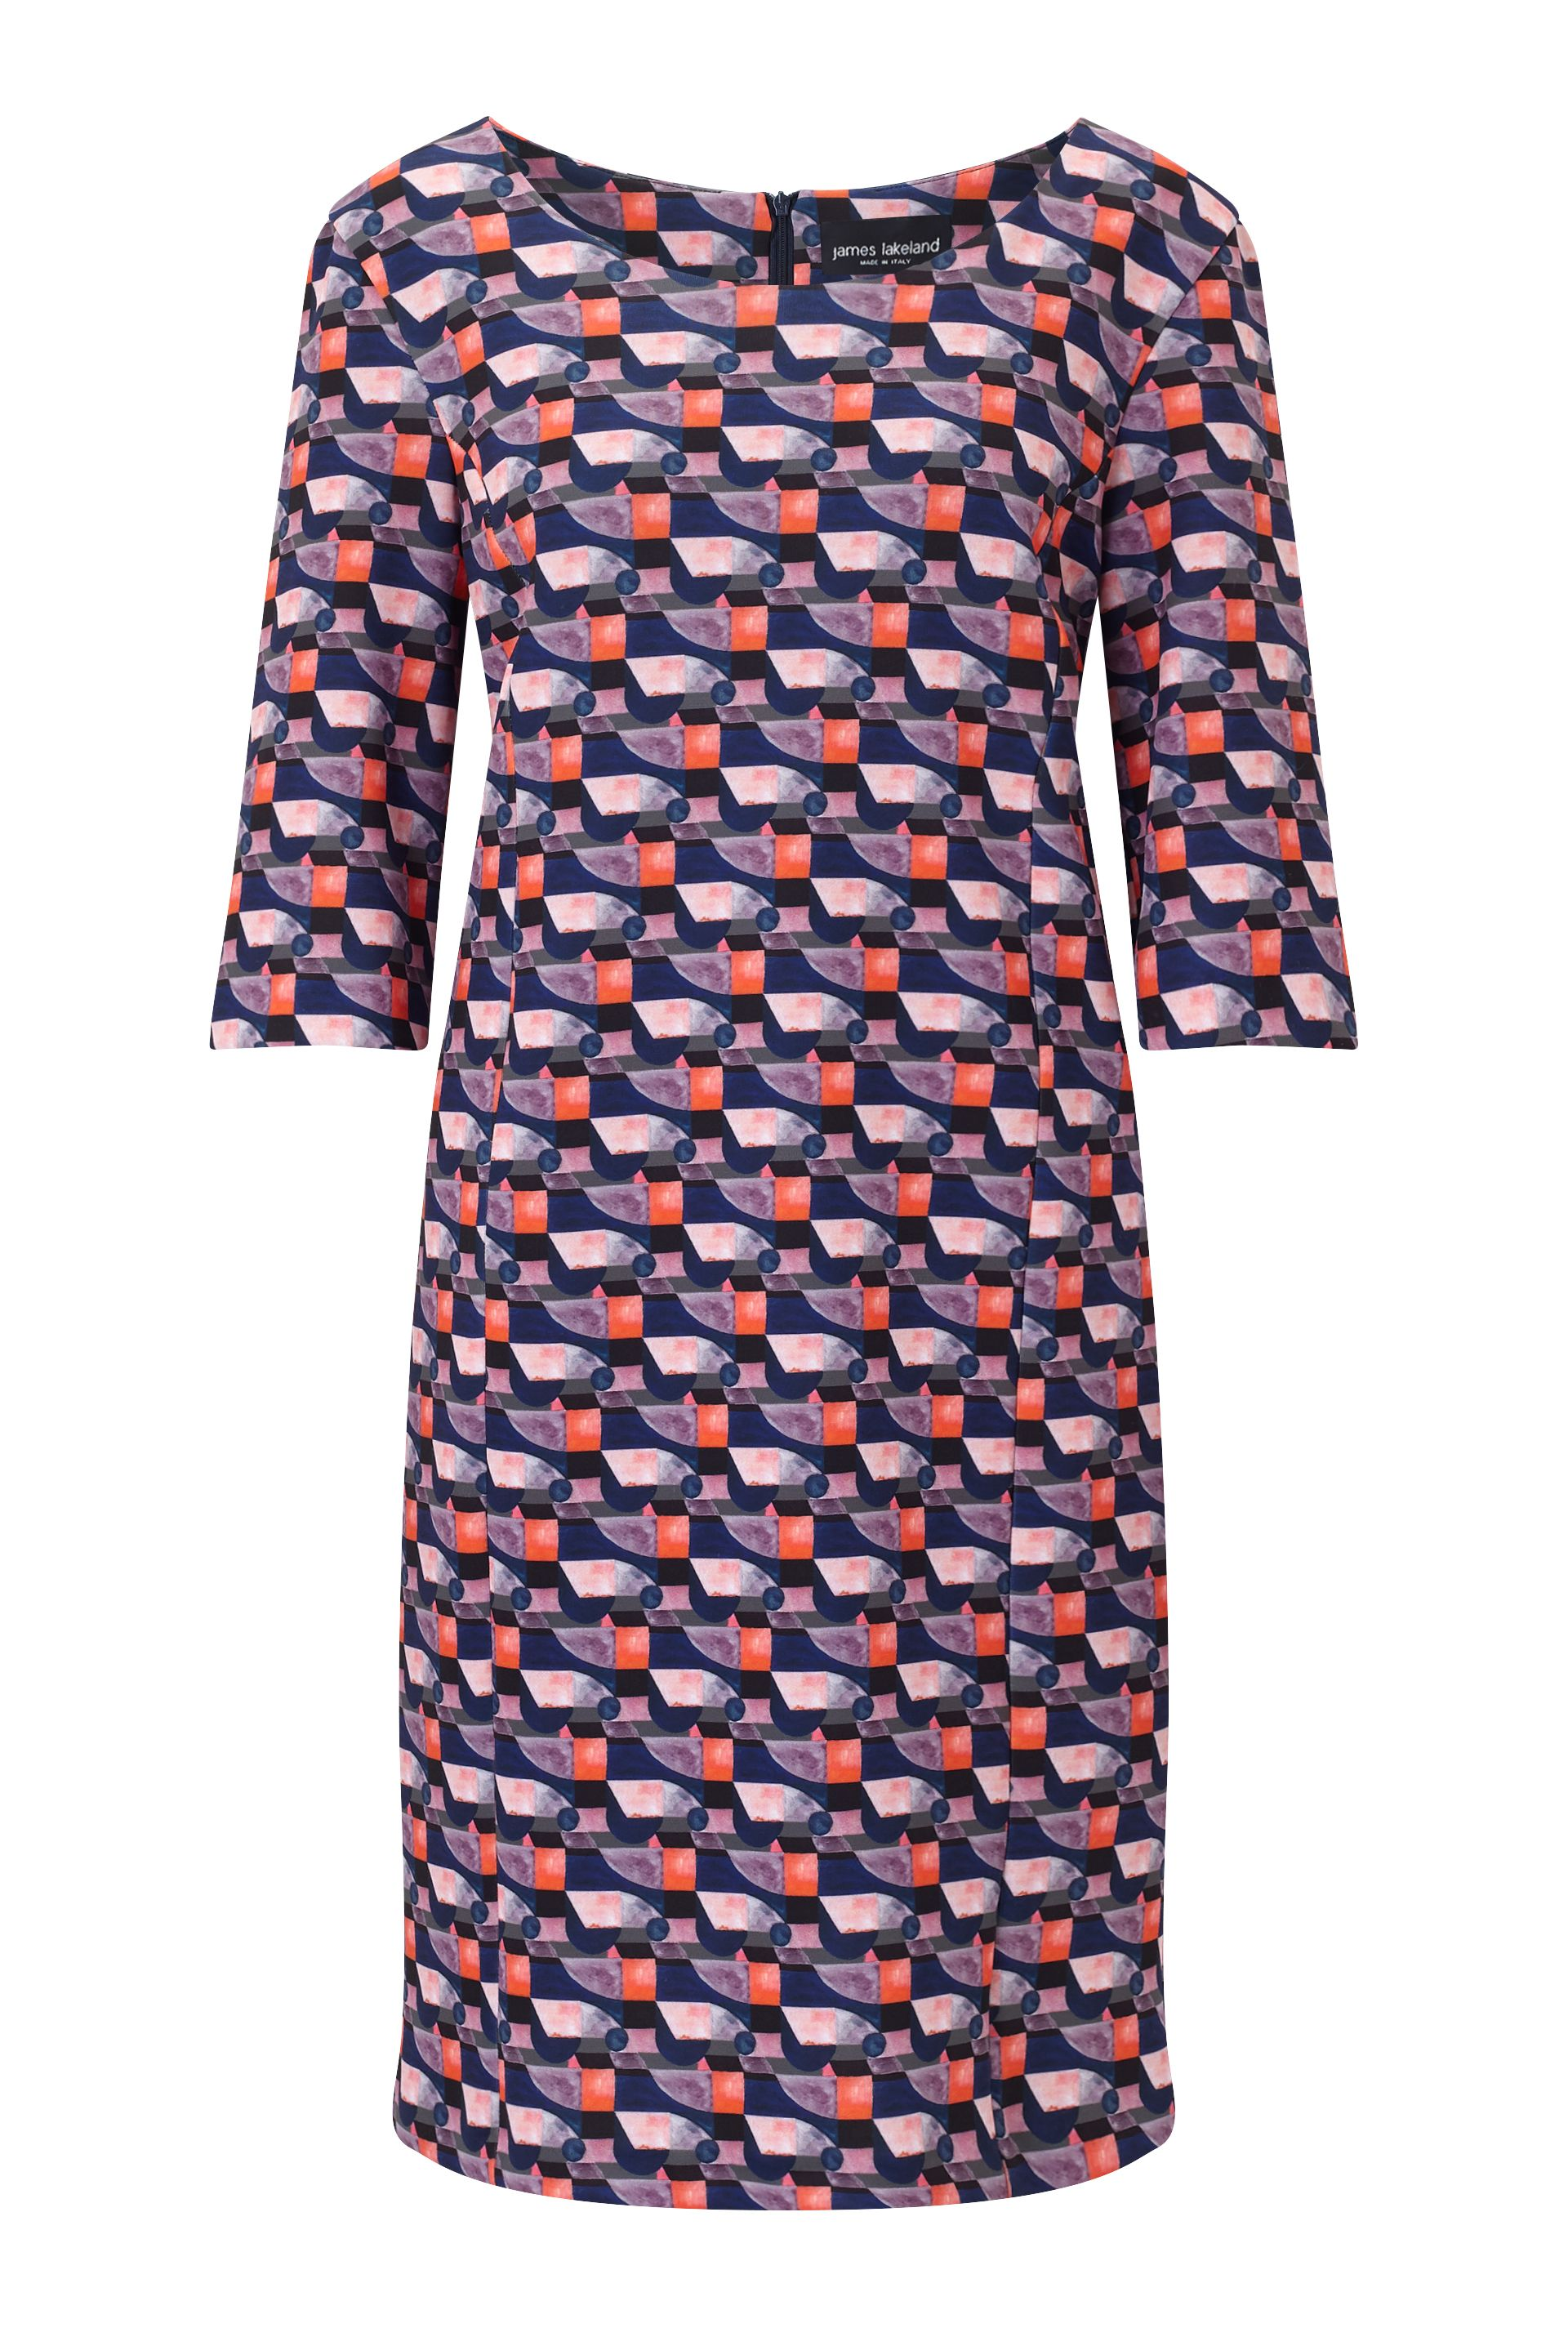 James Lakeland Printed Shift Dress, Pink